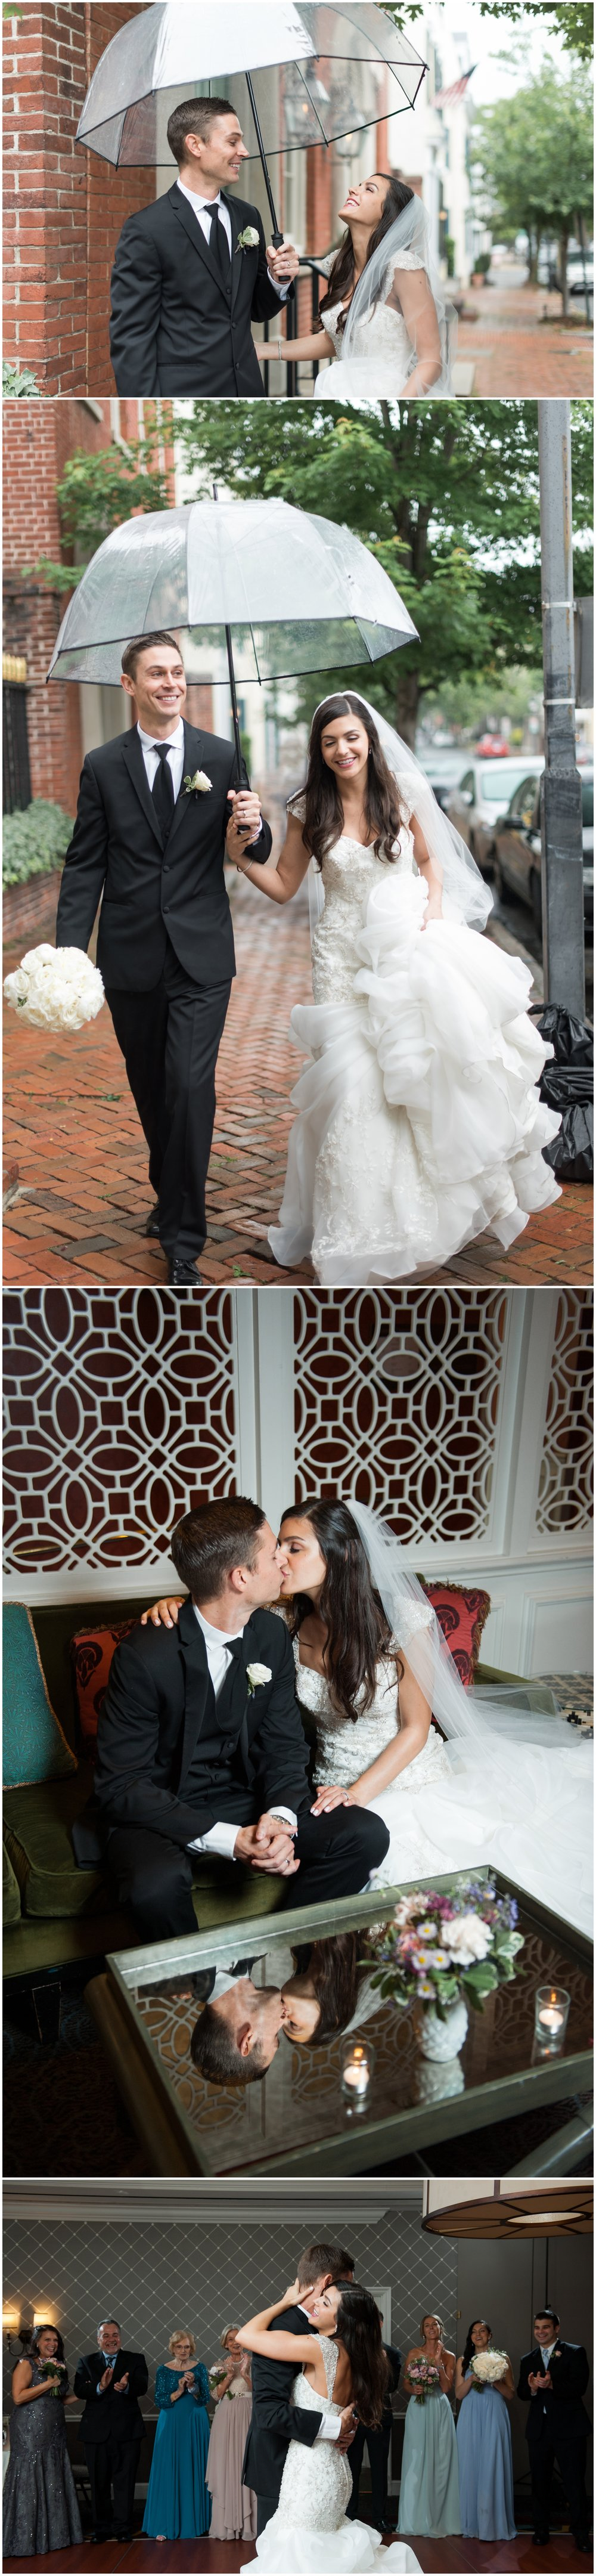 The first two photos of this bride and groom were taken using only natural light on a rainy day, while the second two photos use off camera flash and bounce flash.